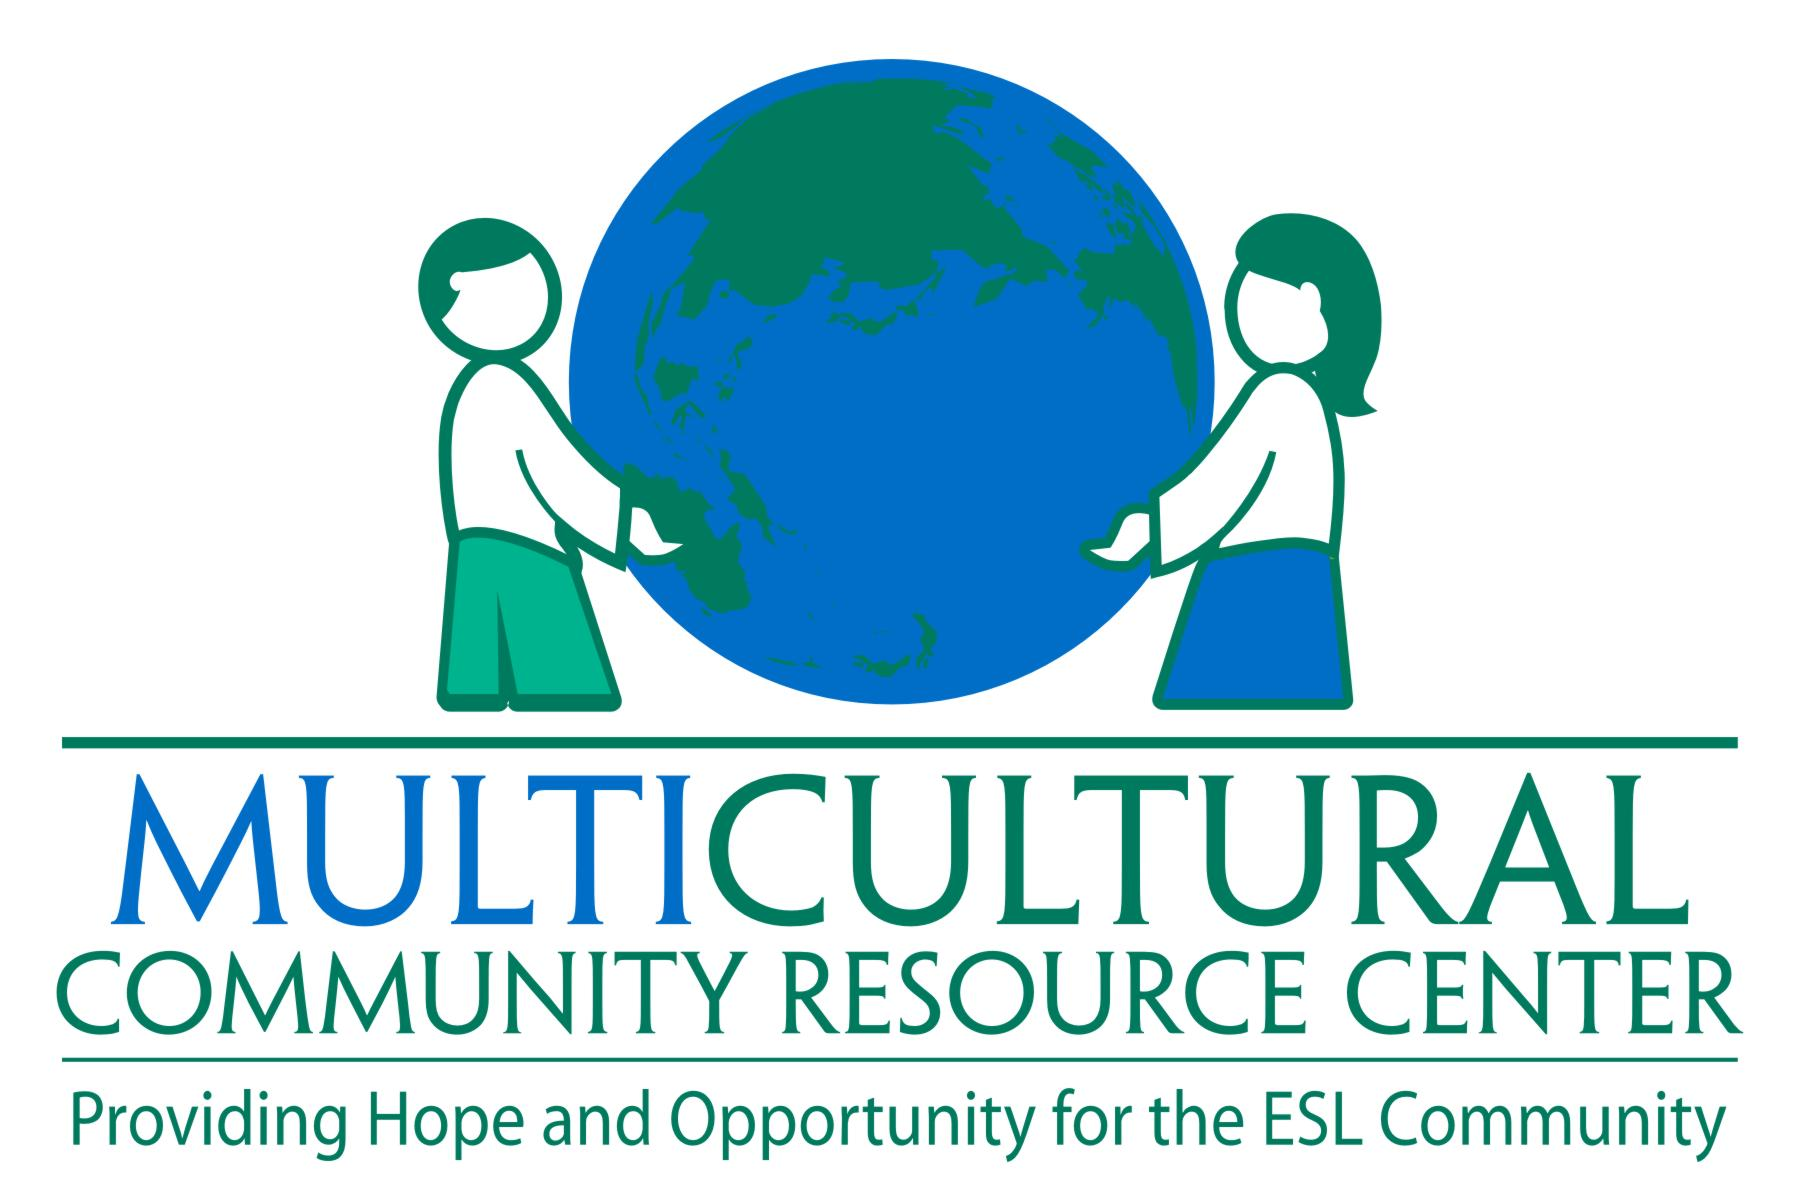 Multicultural Community Resource Center